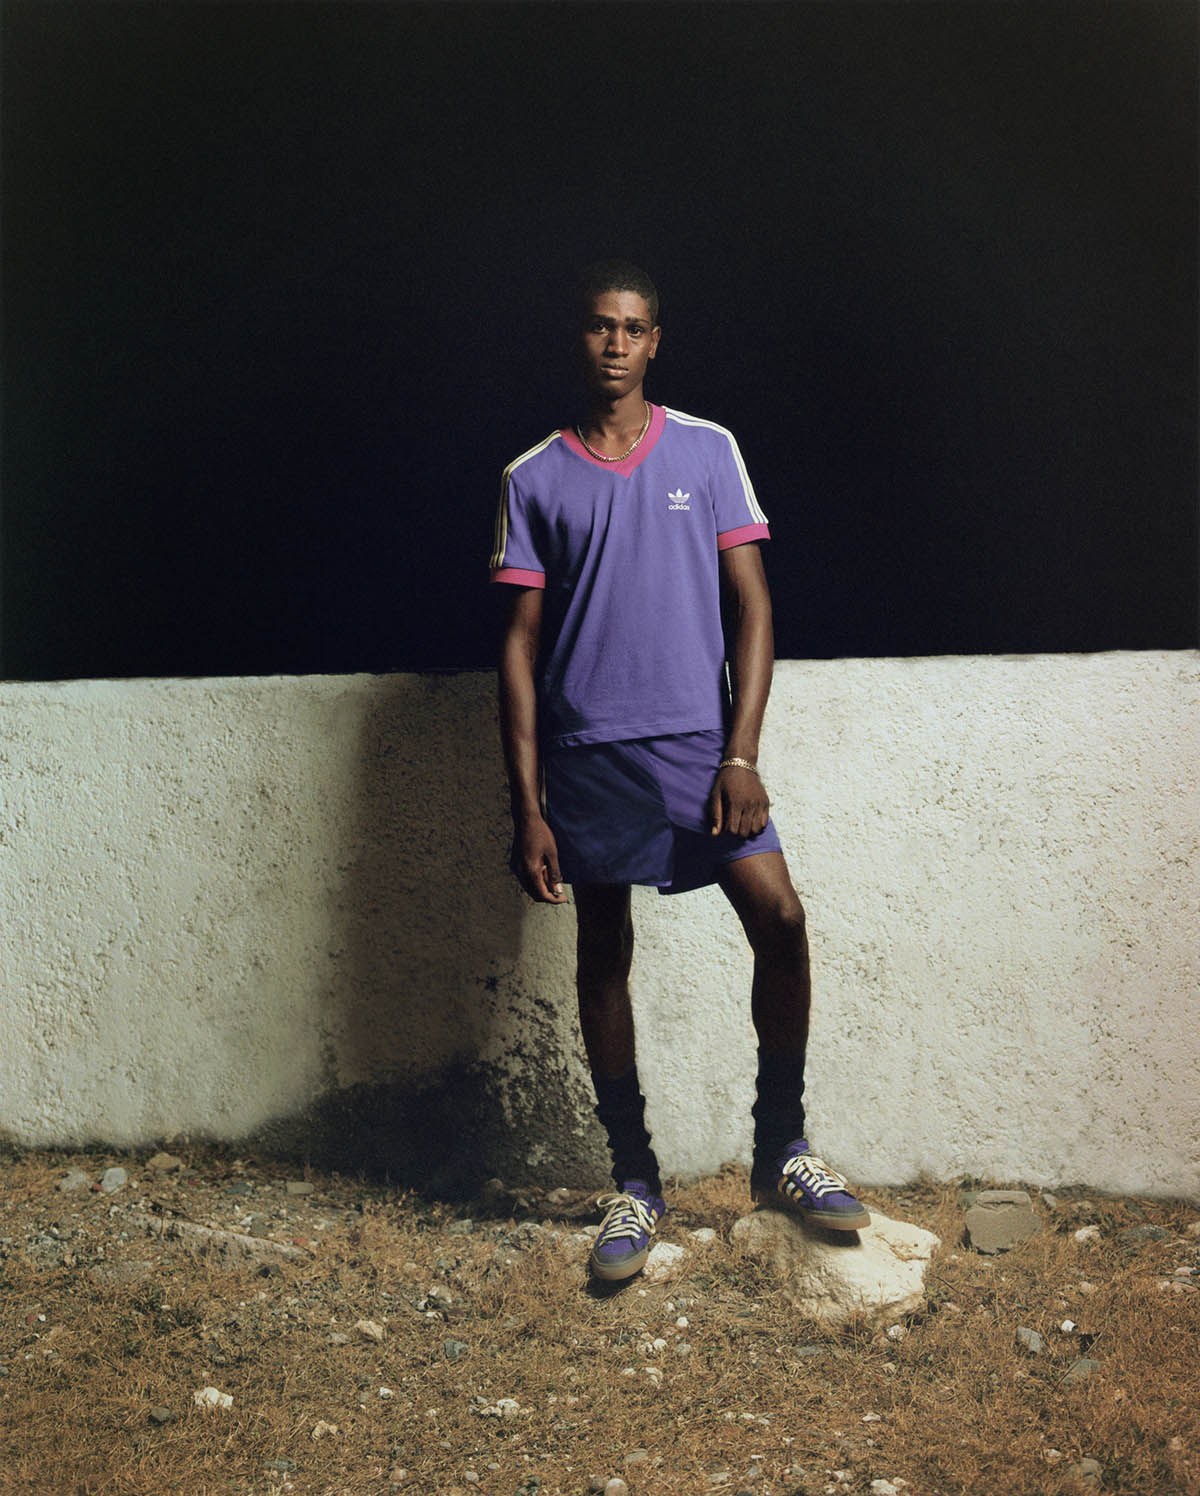 adidas Originals by Wales Bonner Spring Summer 2021